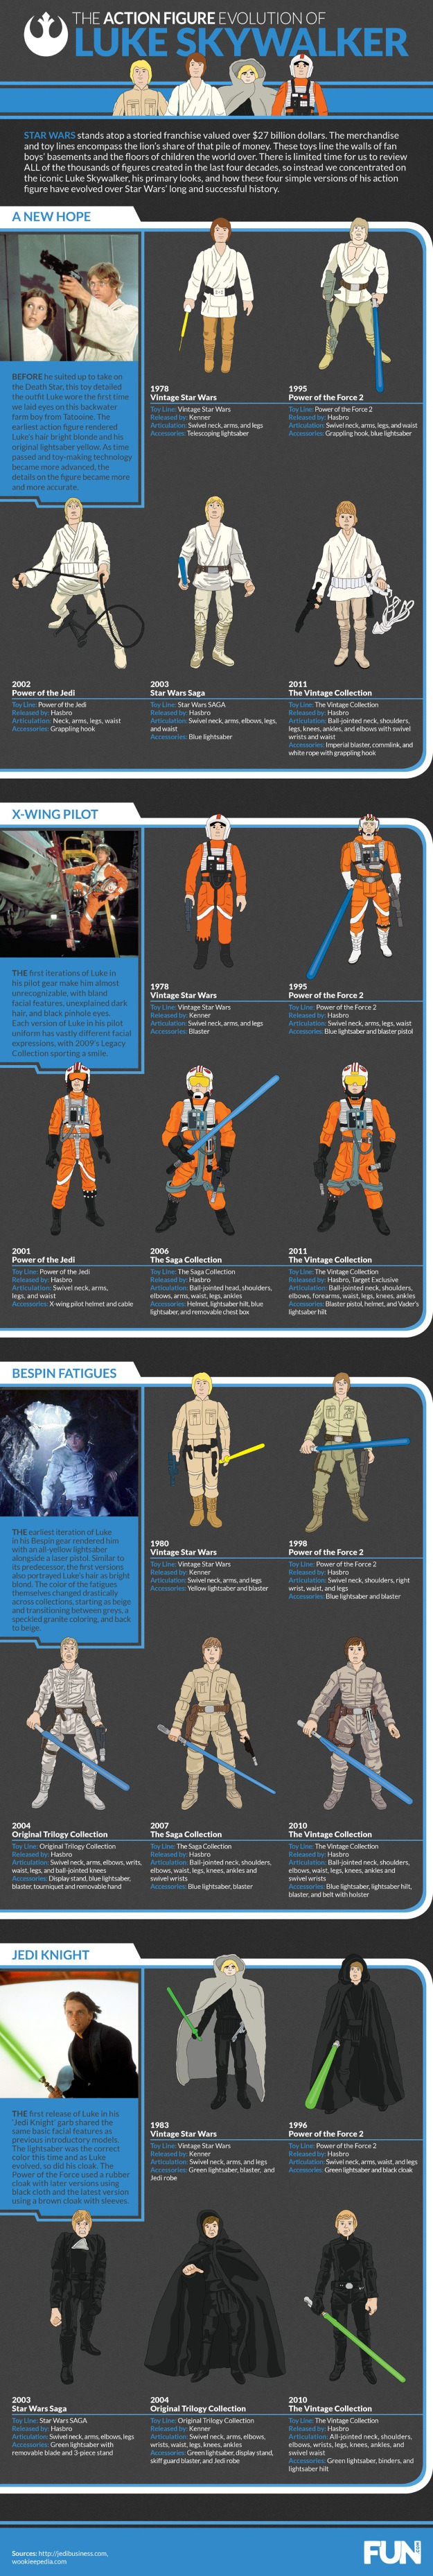 Evolution of Luke Skywalker Action Figure Infographic